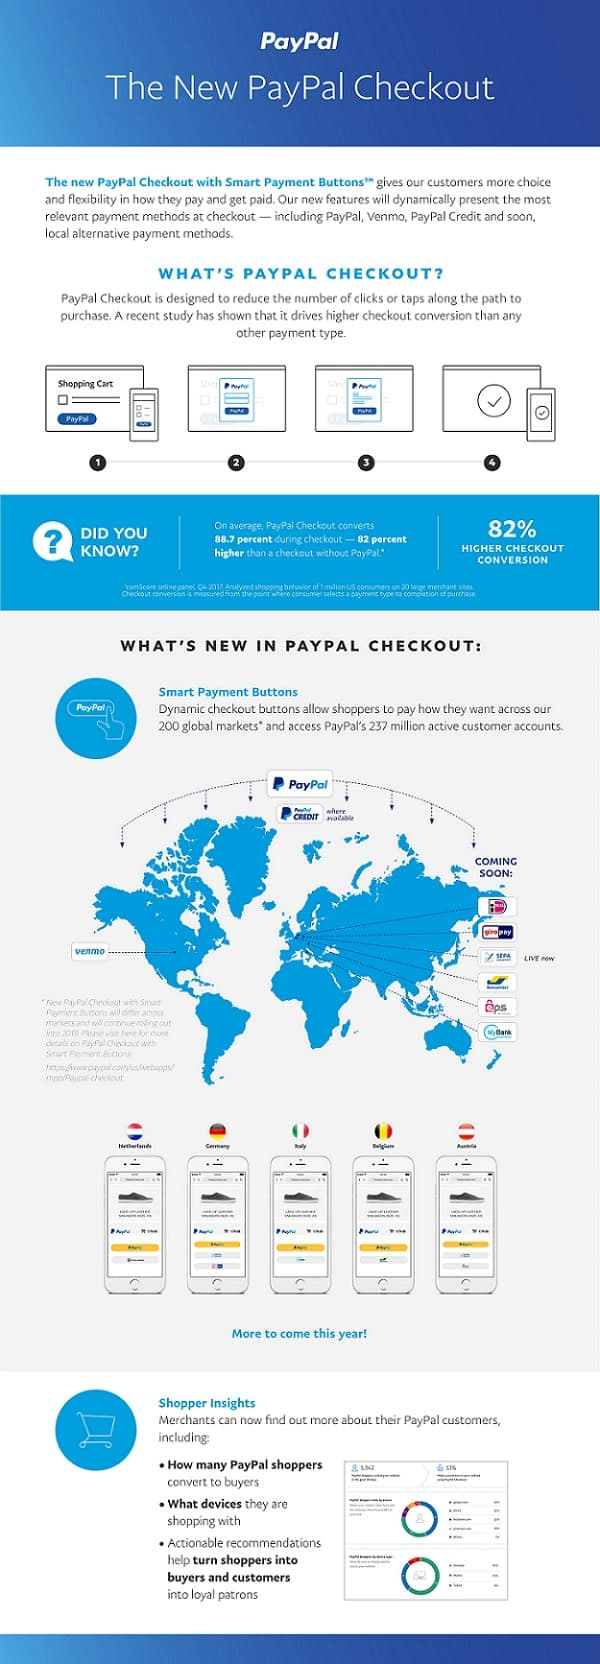 paypal whats new 2018